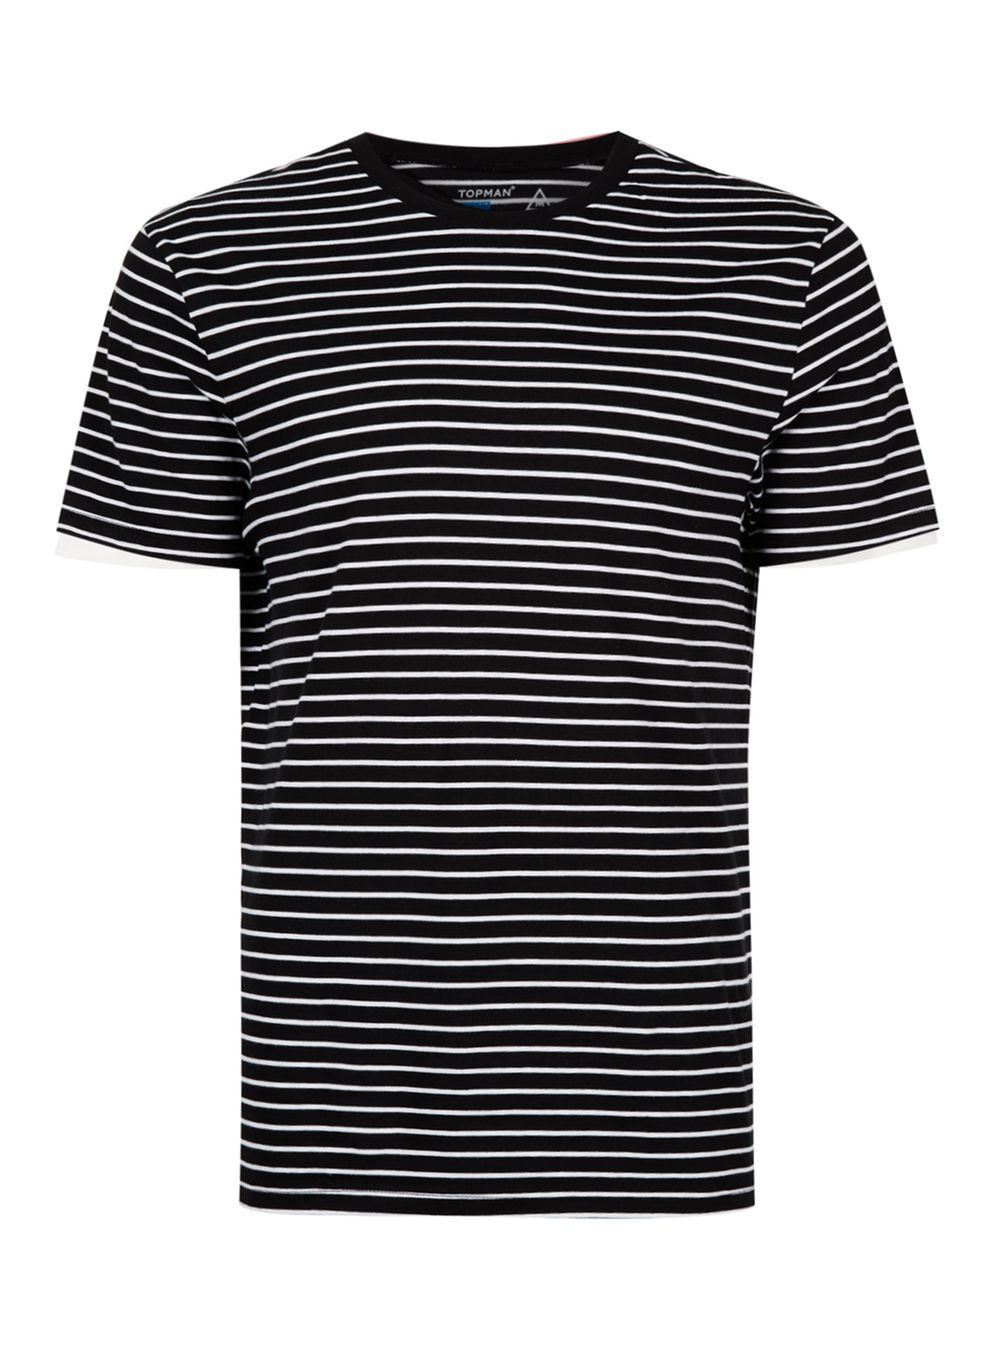 Black and White Stripe T-Shirt £5